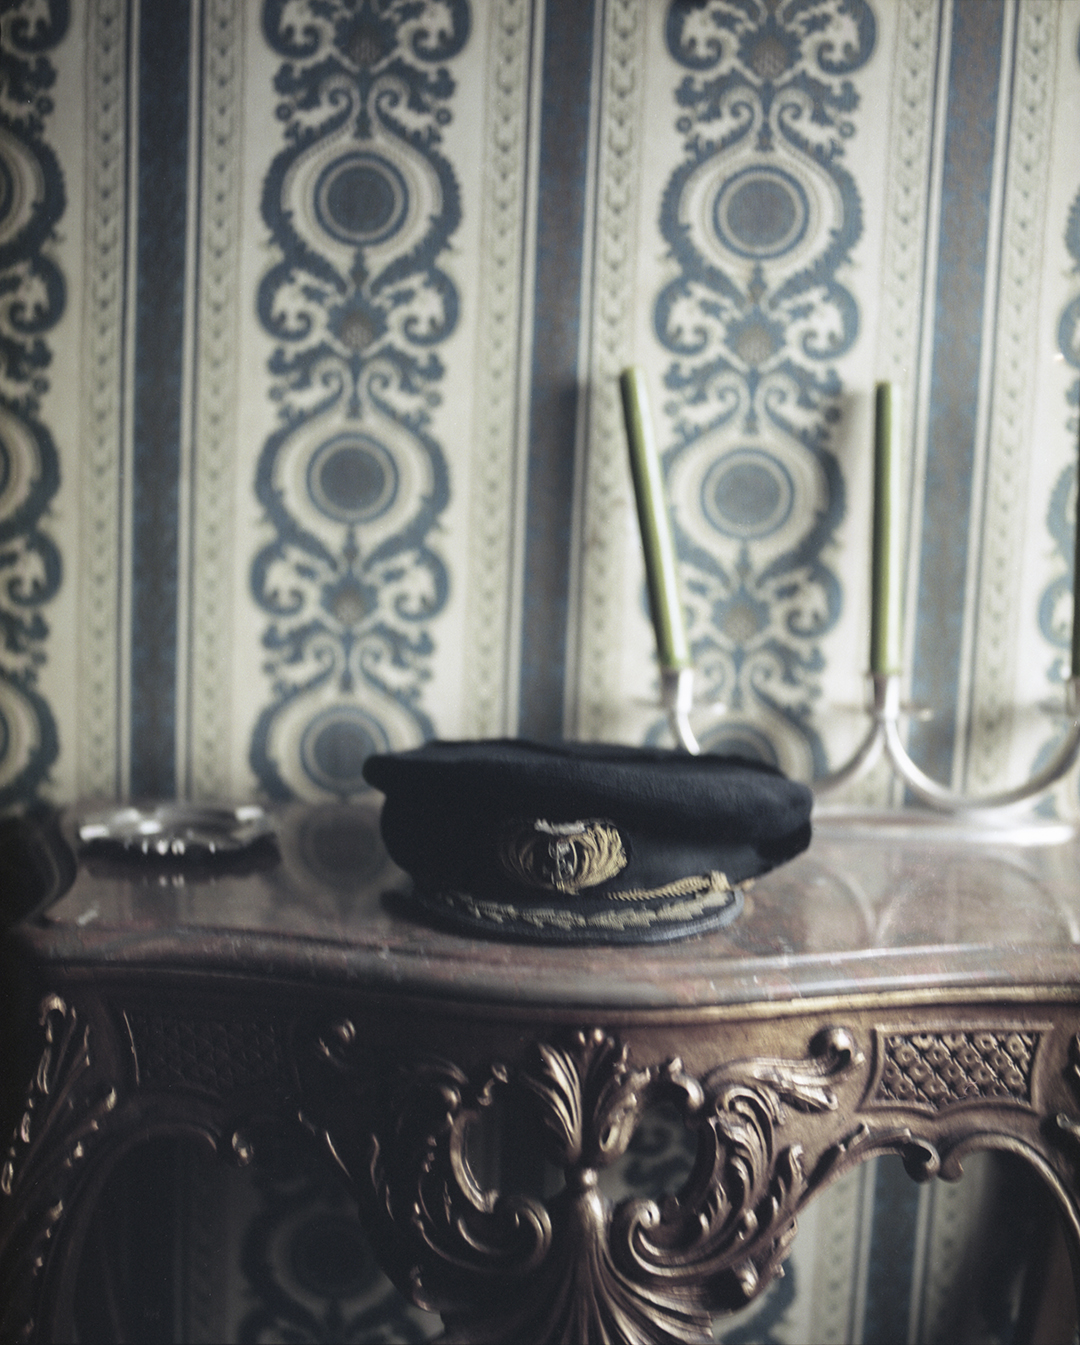 My grandfather's captain's hat at the entrance of my grandmother's house, Vila do Conde, September 2017